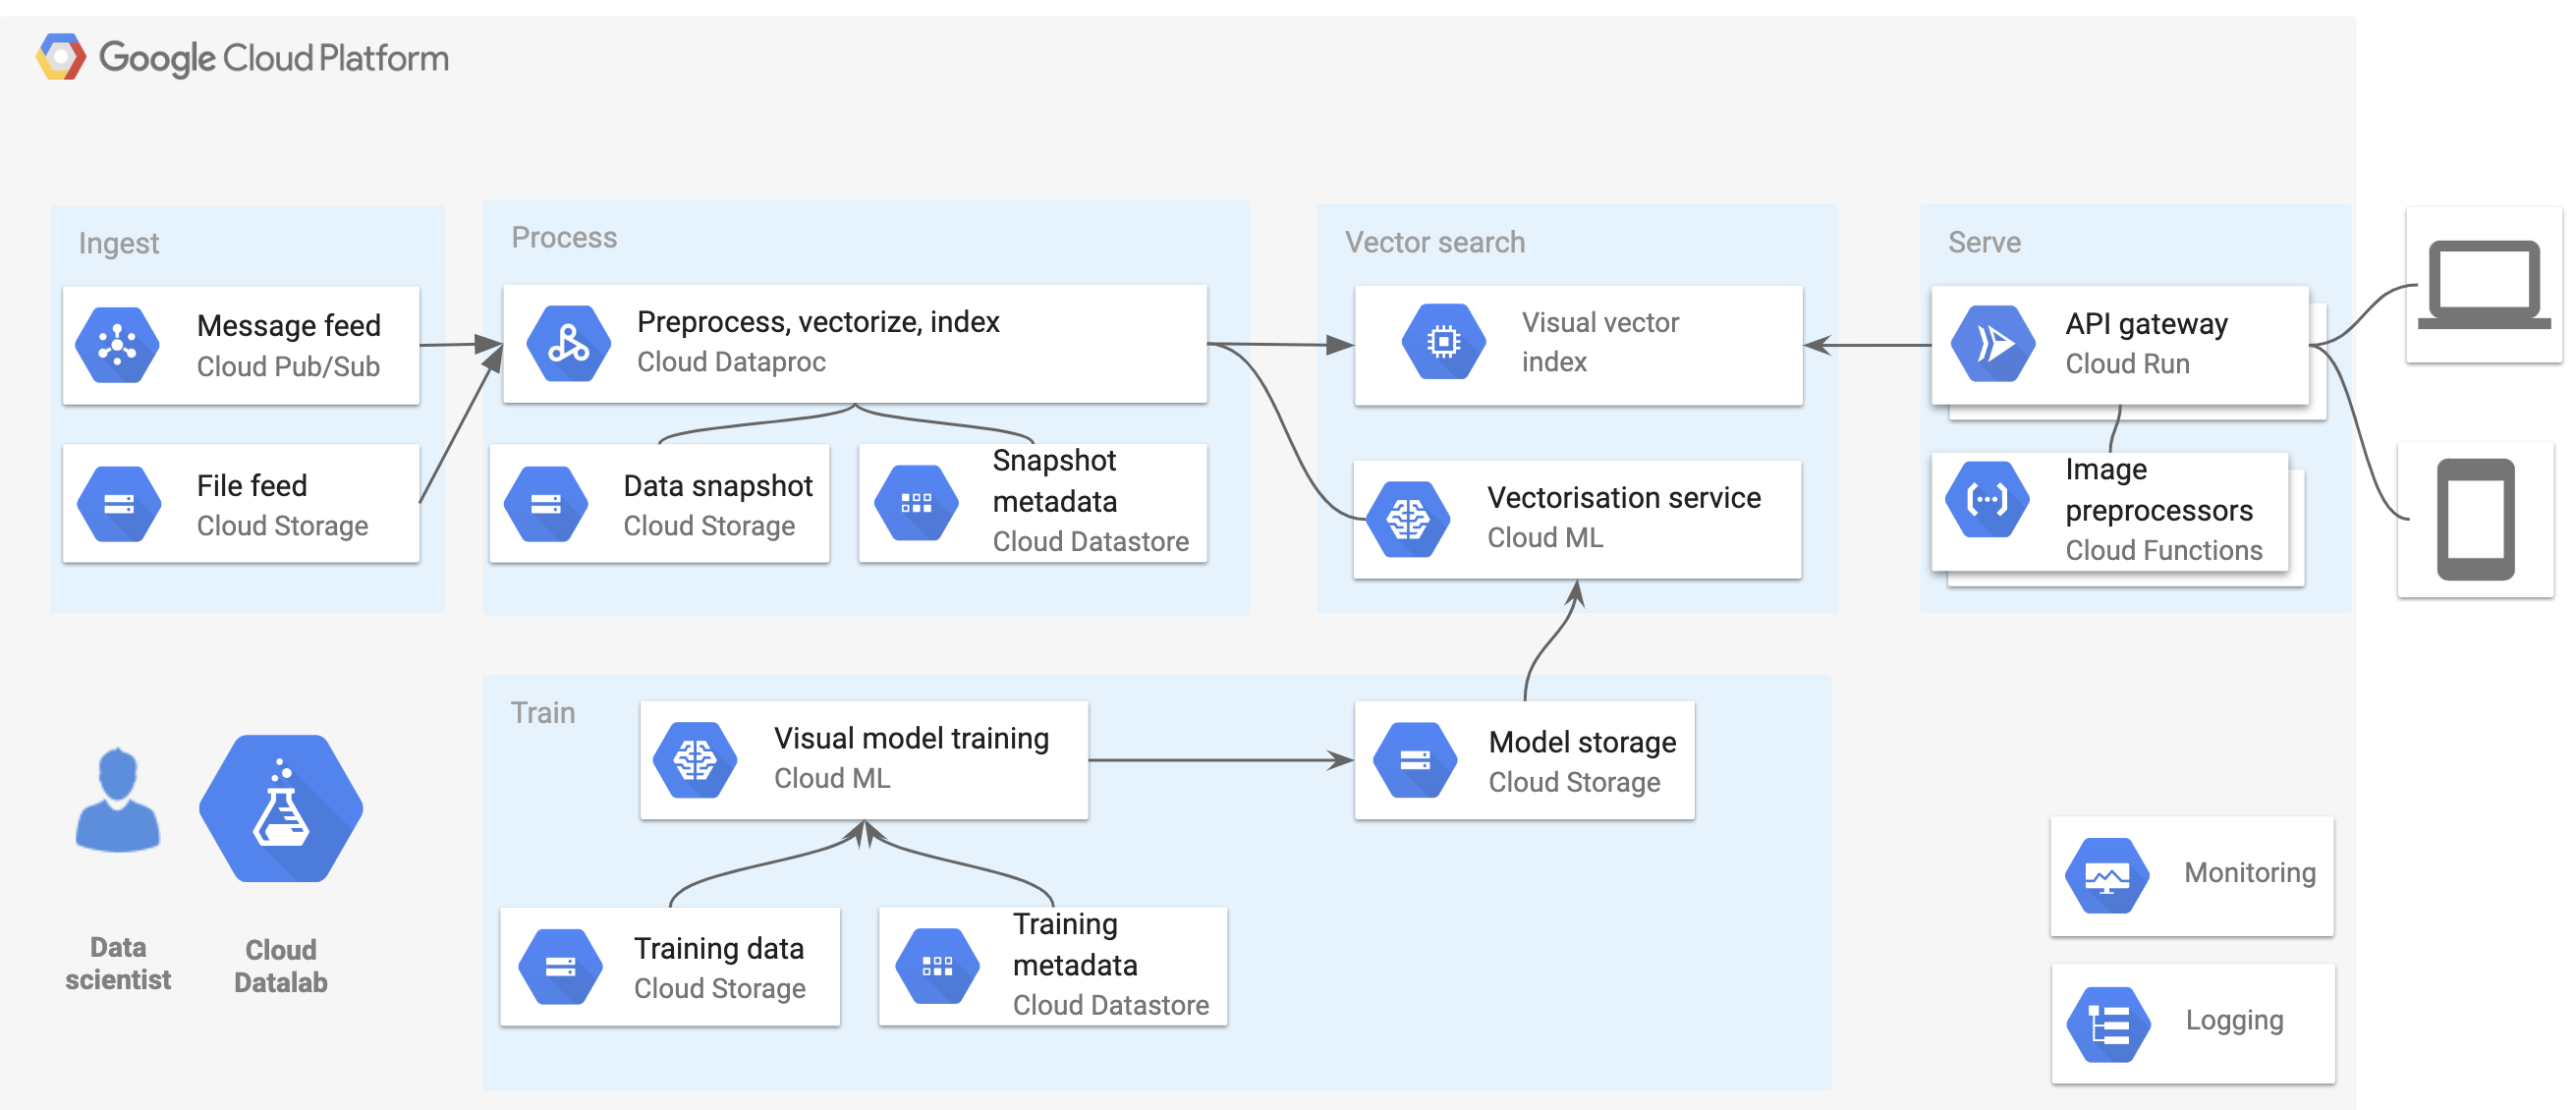 Google Cloud Platform flow chart